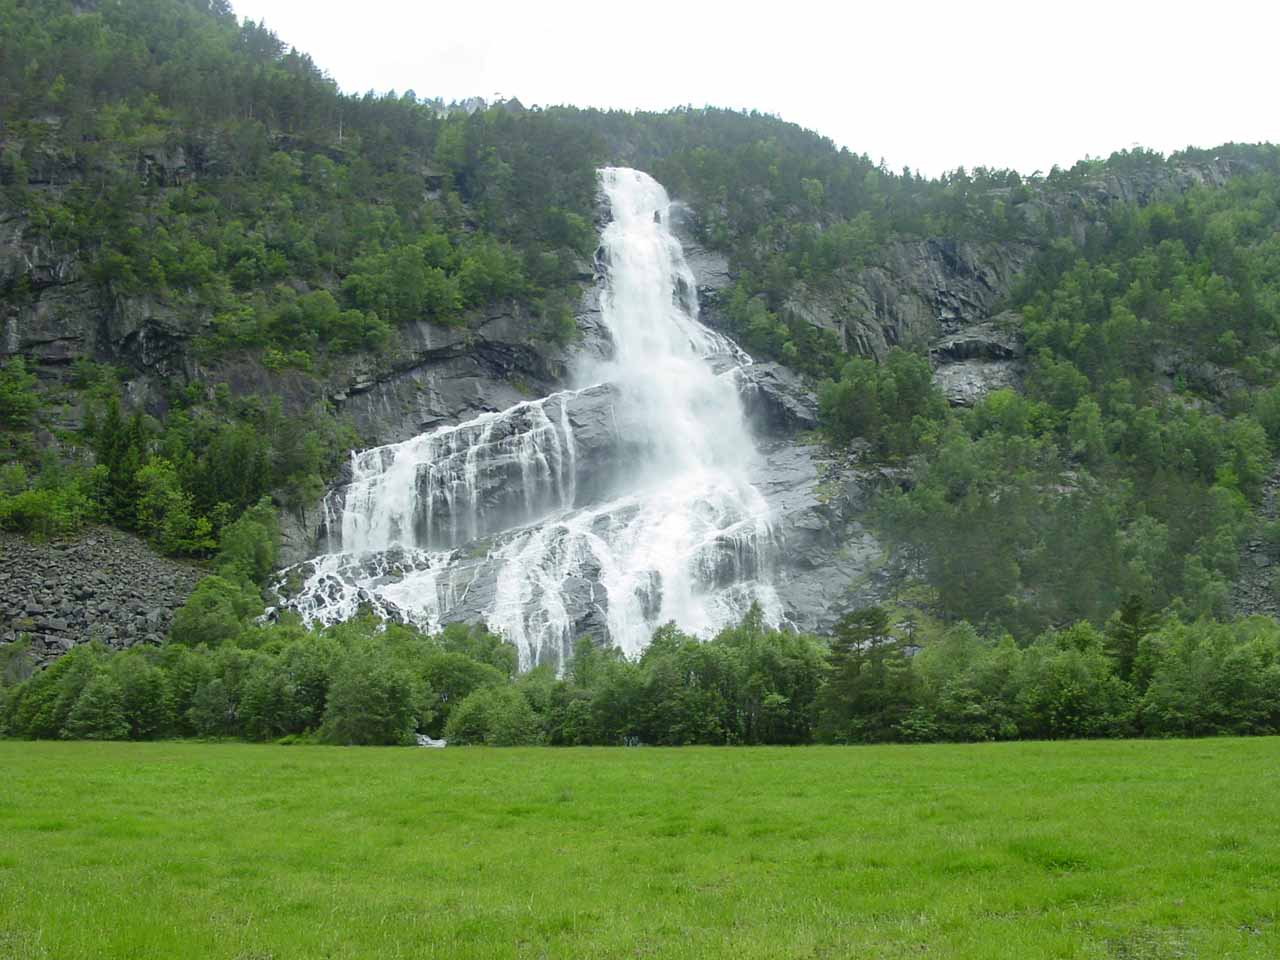 Just to the north of Låtefossen was Vidfoss, which was yet another of the beautiful waterfalls in Oddadalen